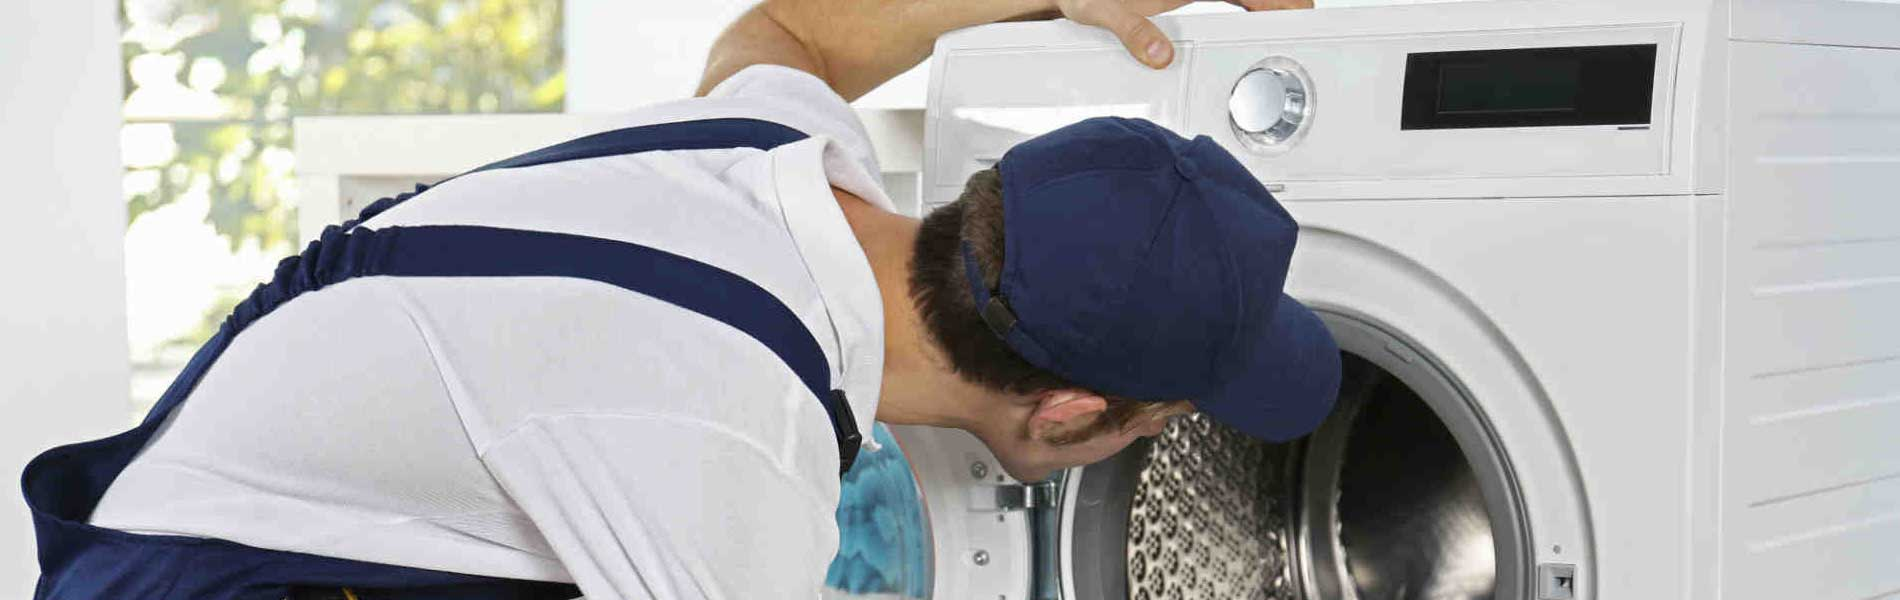 Washing Machine Mechanic in Chennai